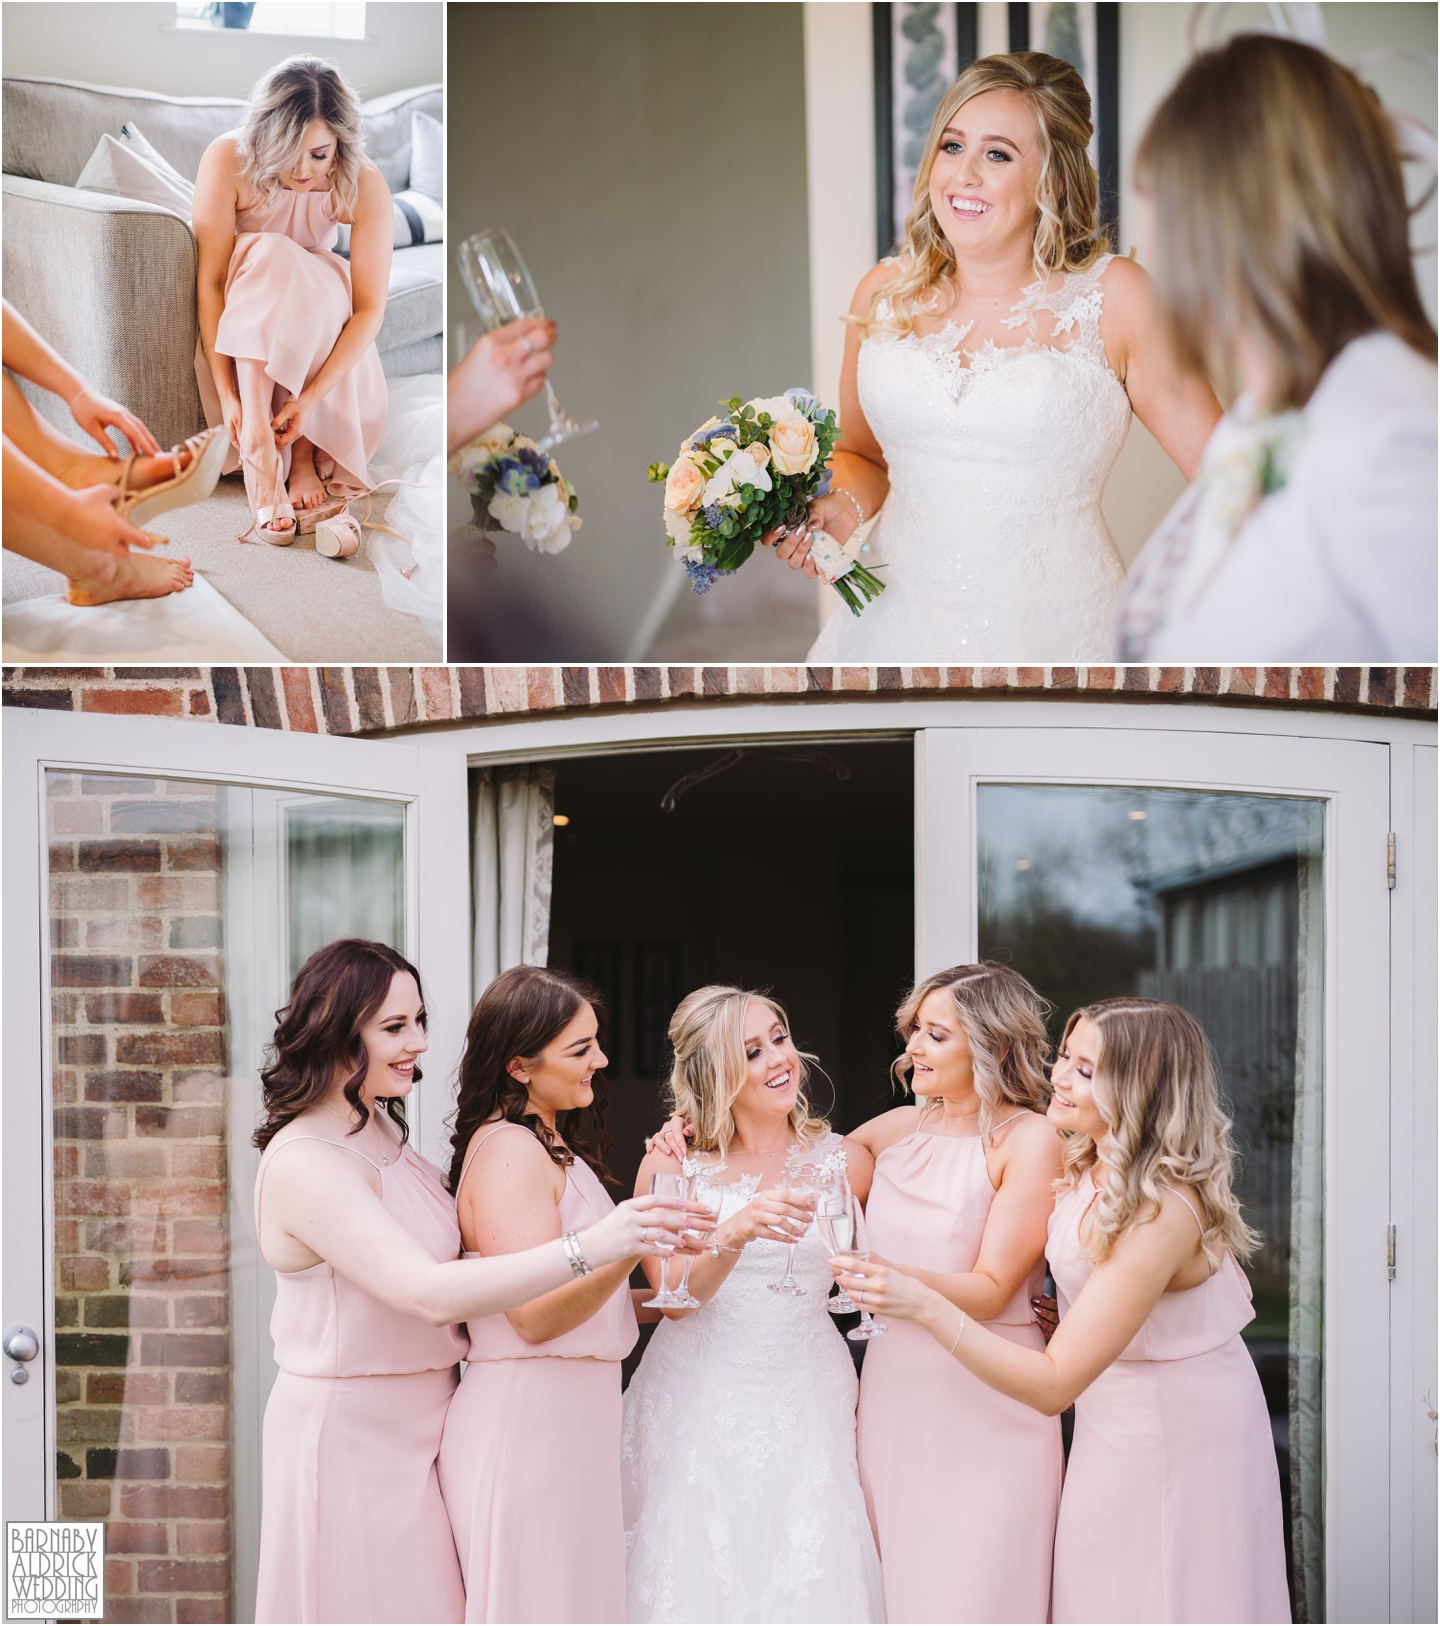 Bride and bridesmaids at Priory Cottages in Wetherby, Priory Cottages Wedding, Spring Wedding